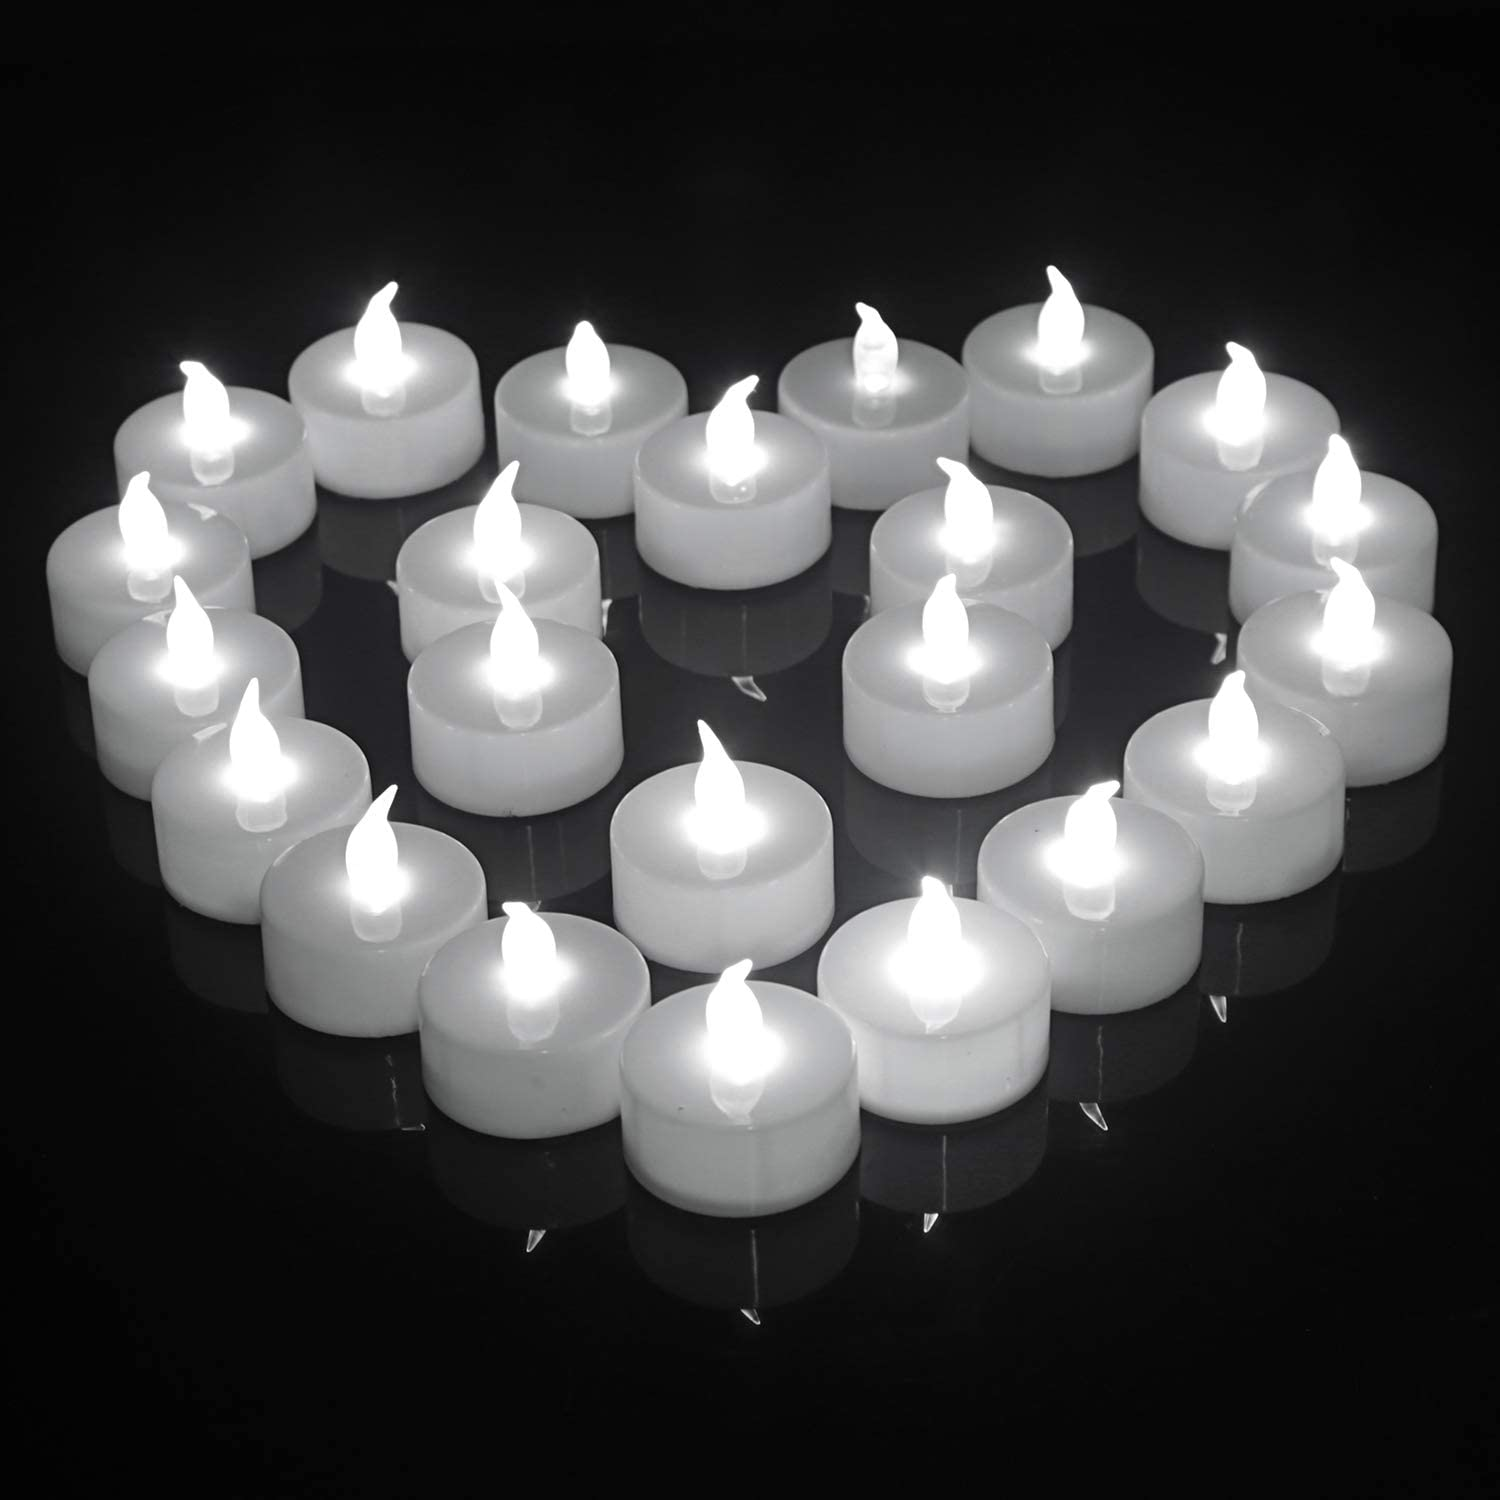 LED Tea Light Candles,Batteries Operated Candle Lights Flickering Flameless Cold White Color for Outdoor Décor Wedding Party Gift Birthday Valentine Christmas Pumkin Diwali 100-pack